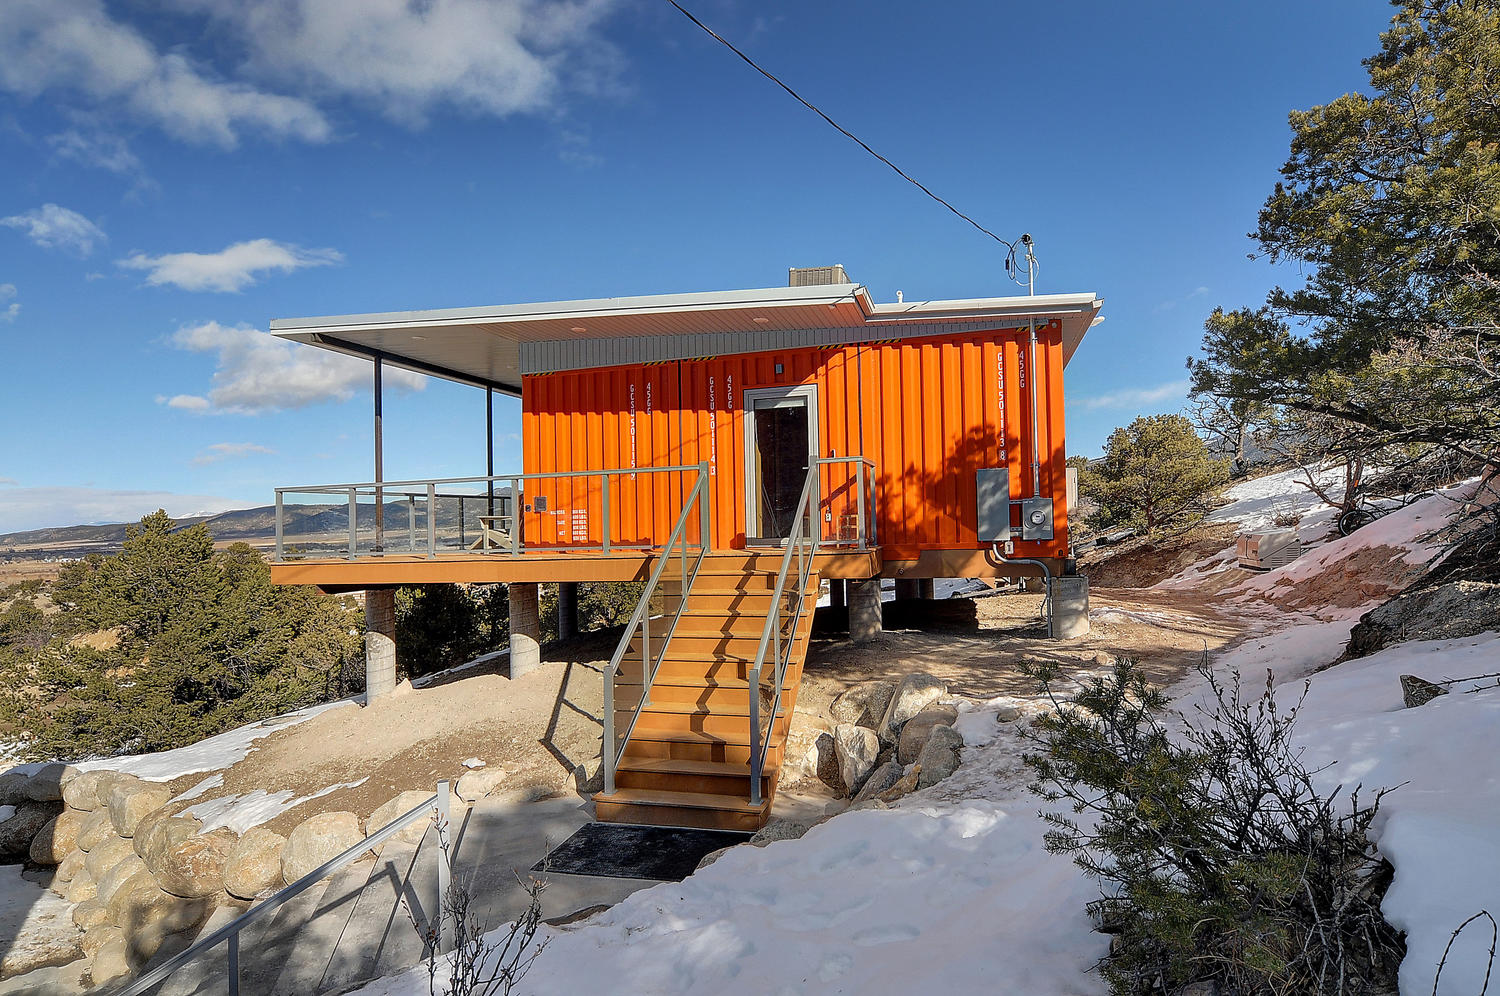 Stairs lead up to a bright orange shipping container house.